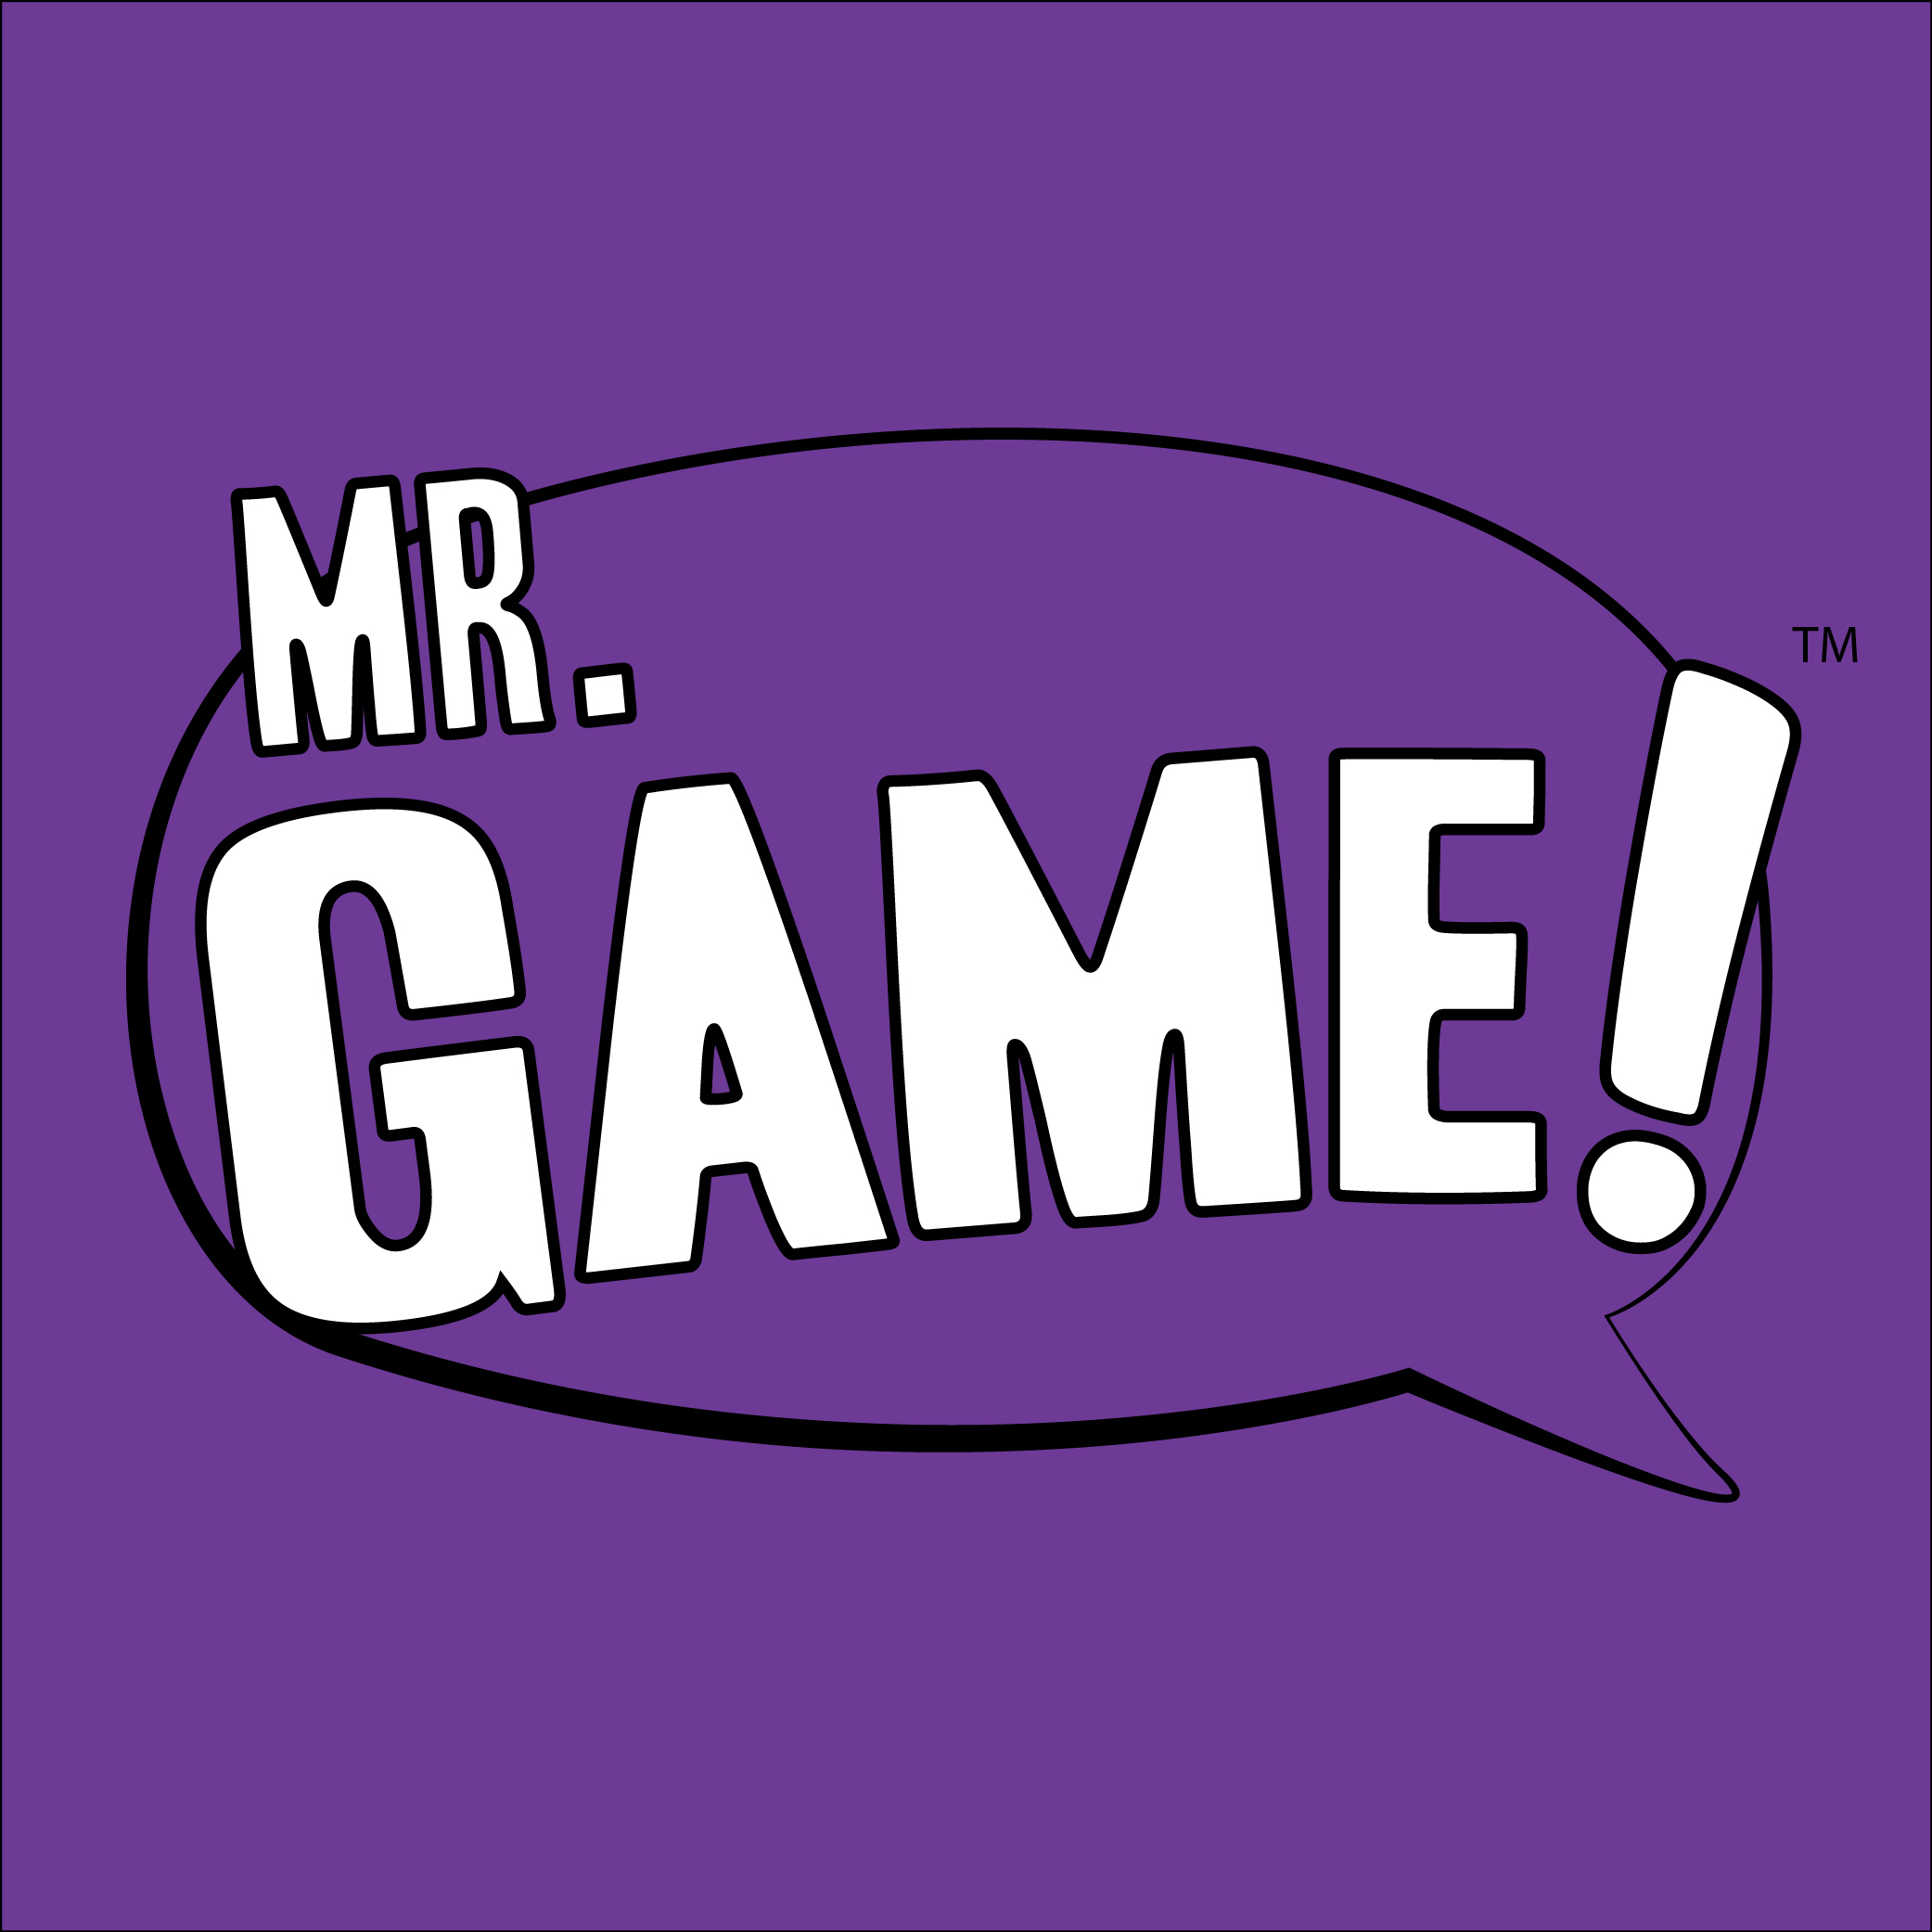 Mr. Game!